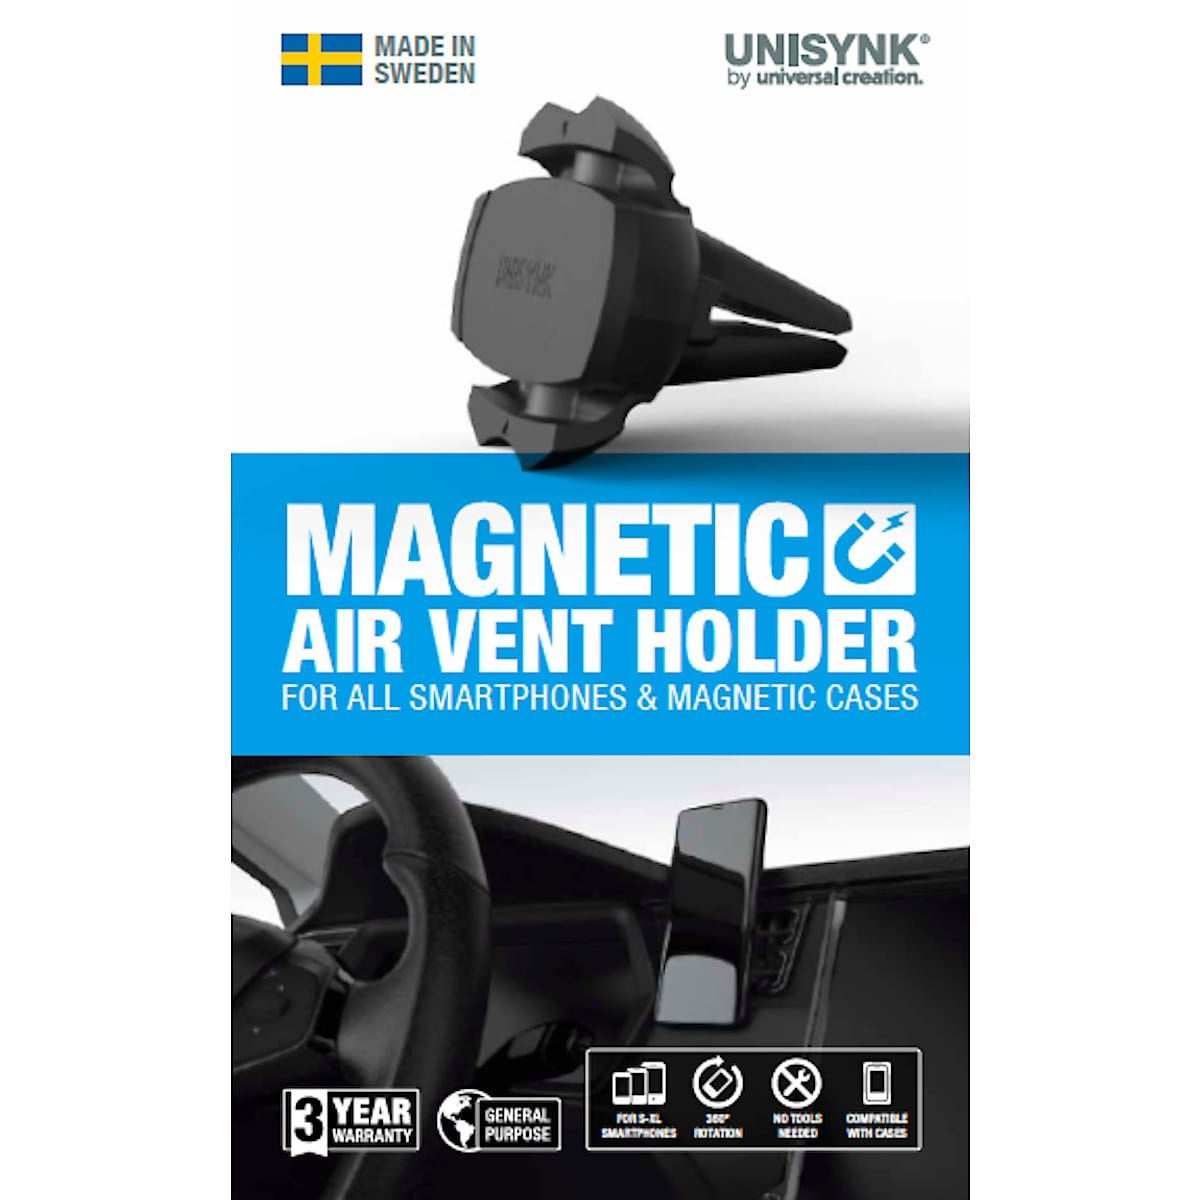 Telefonhållare magnetisk, Unisynk Magnetic Air Vent Holder